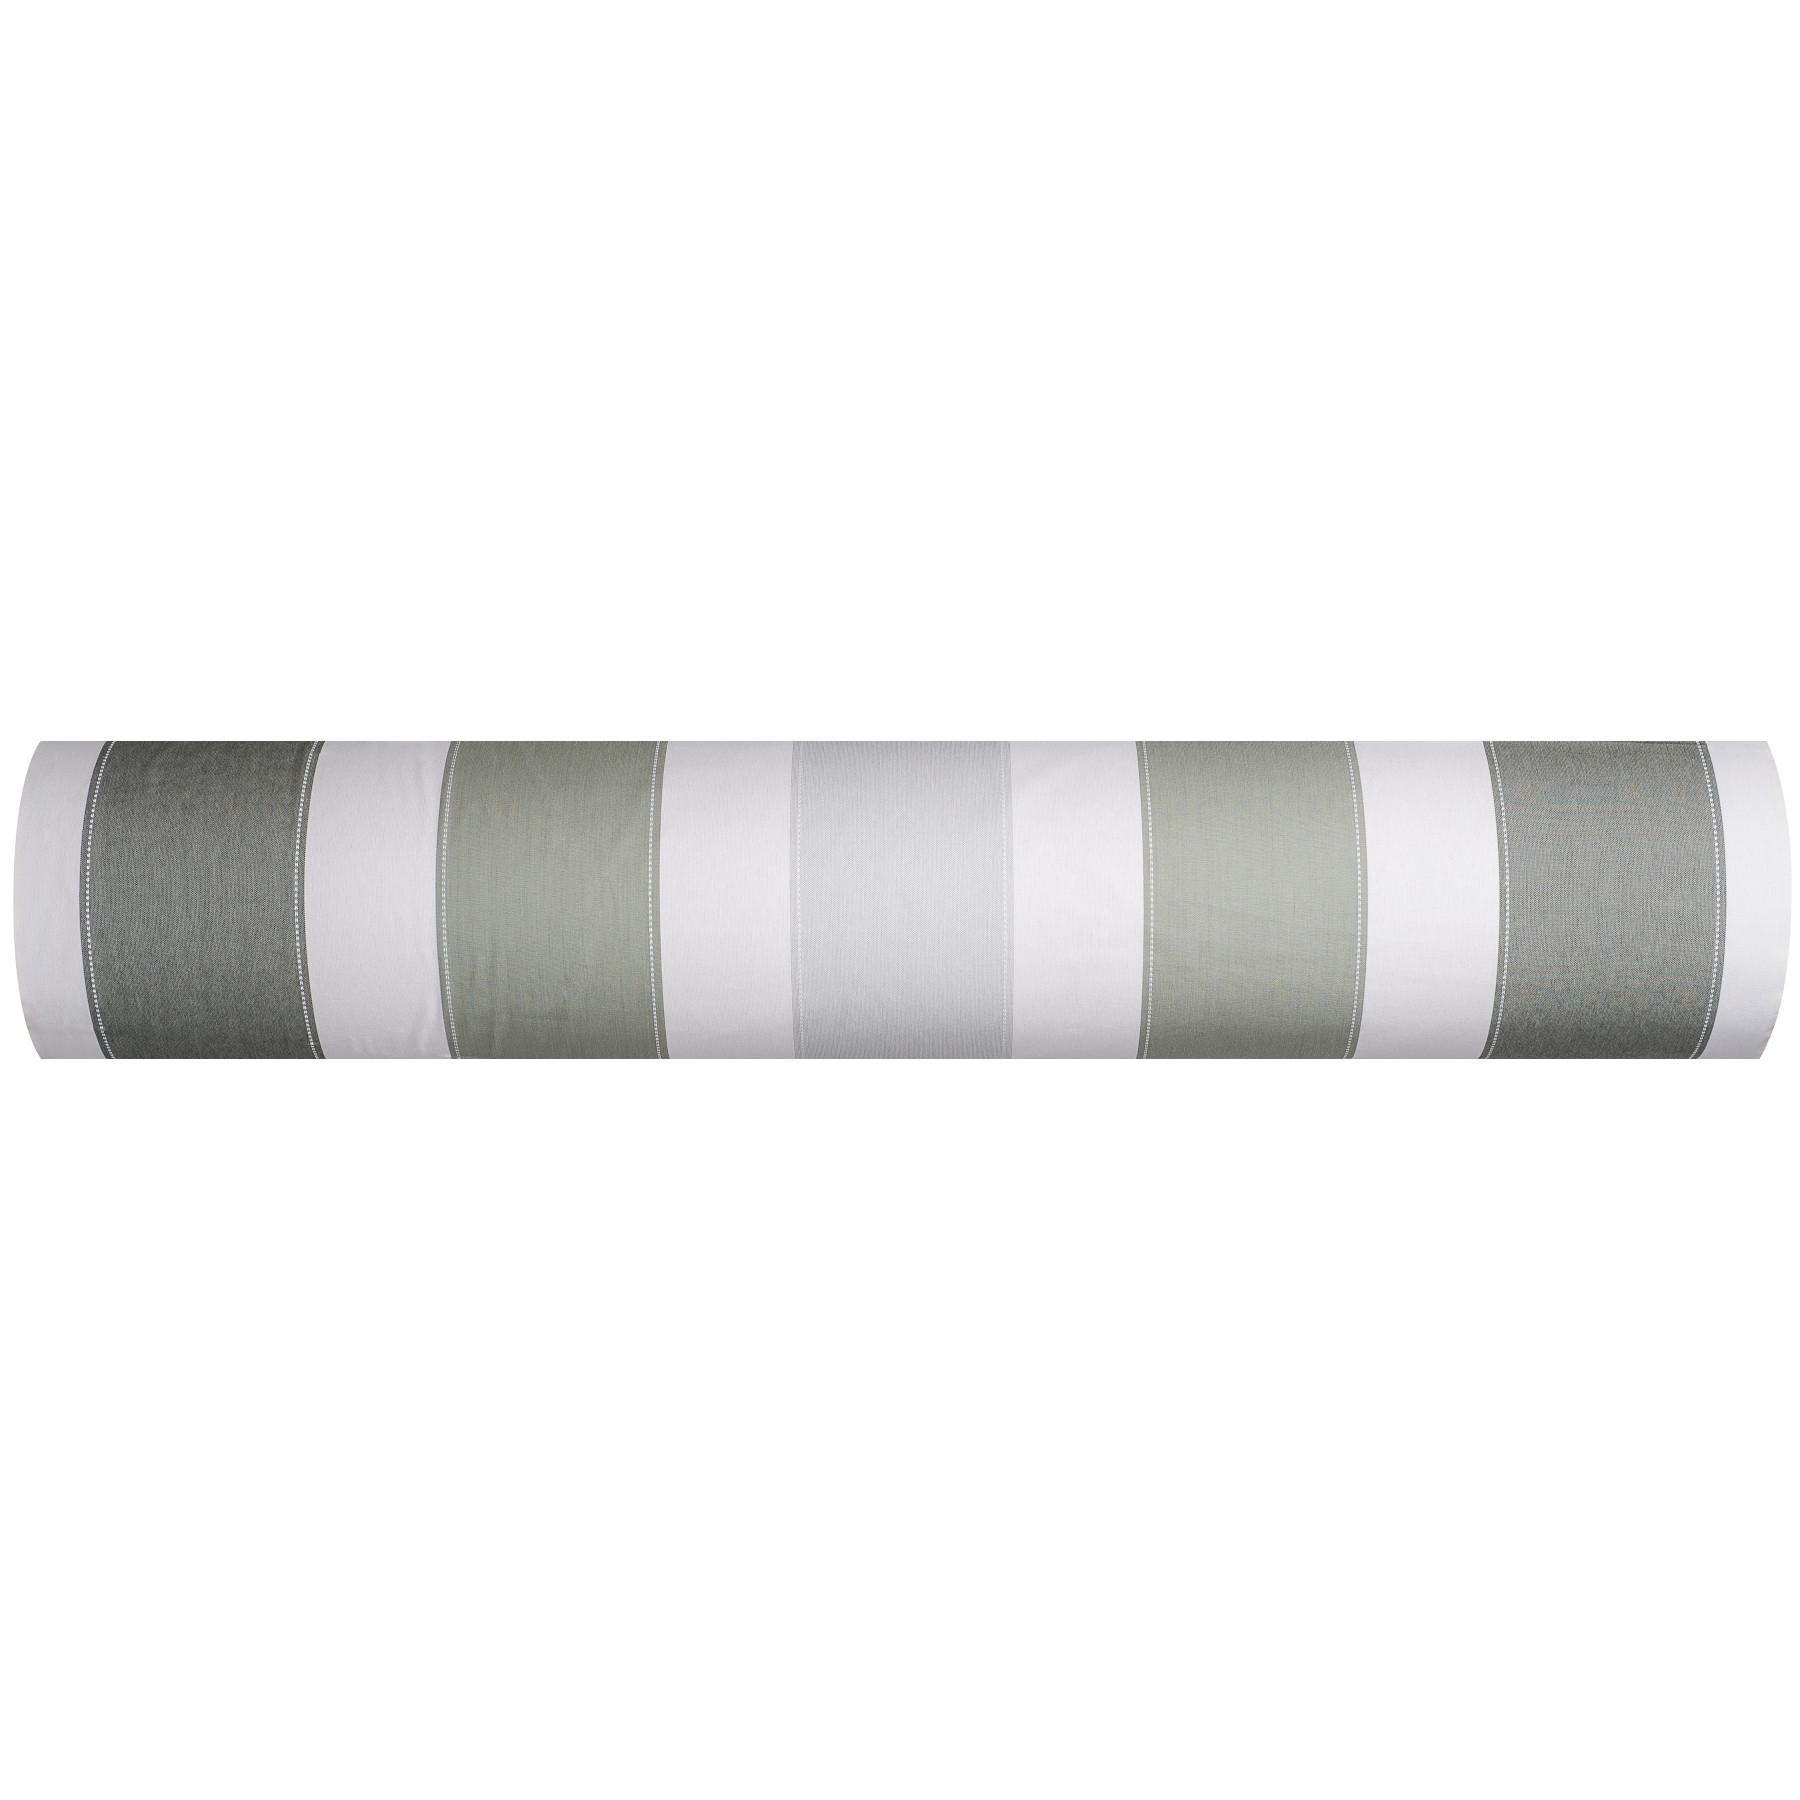 Fabric by the meter SELLIER BLANC 180cm